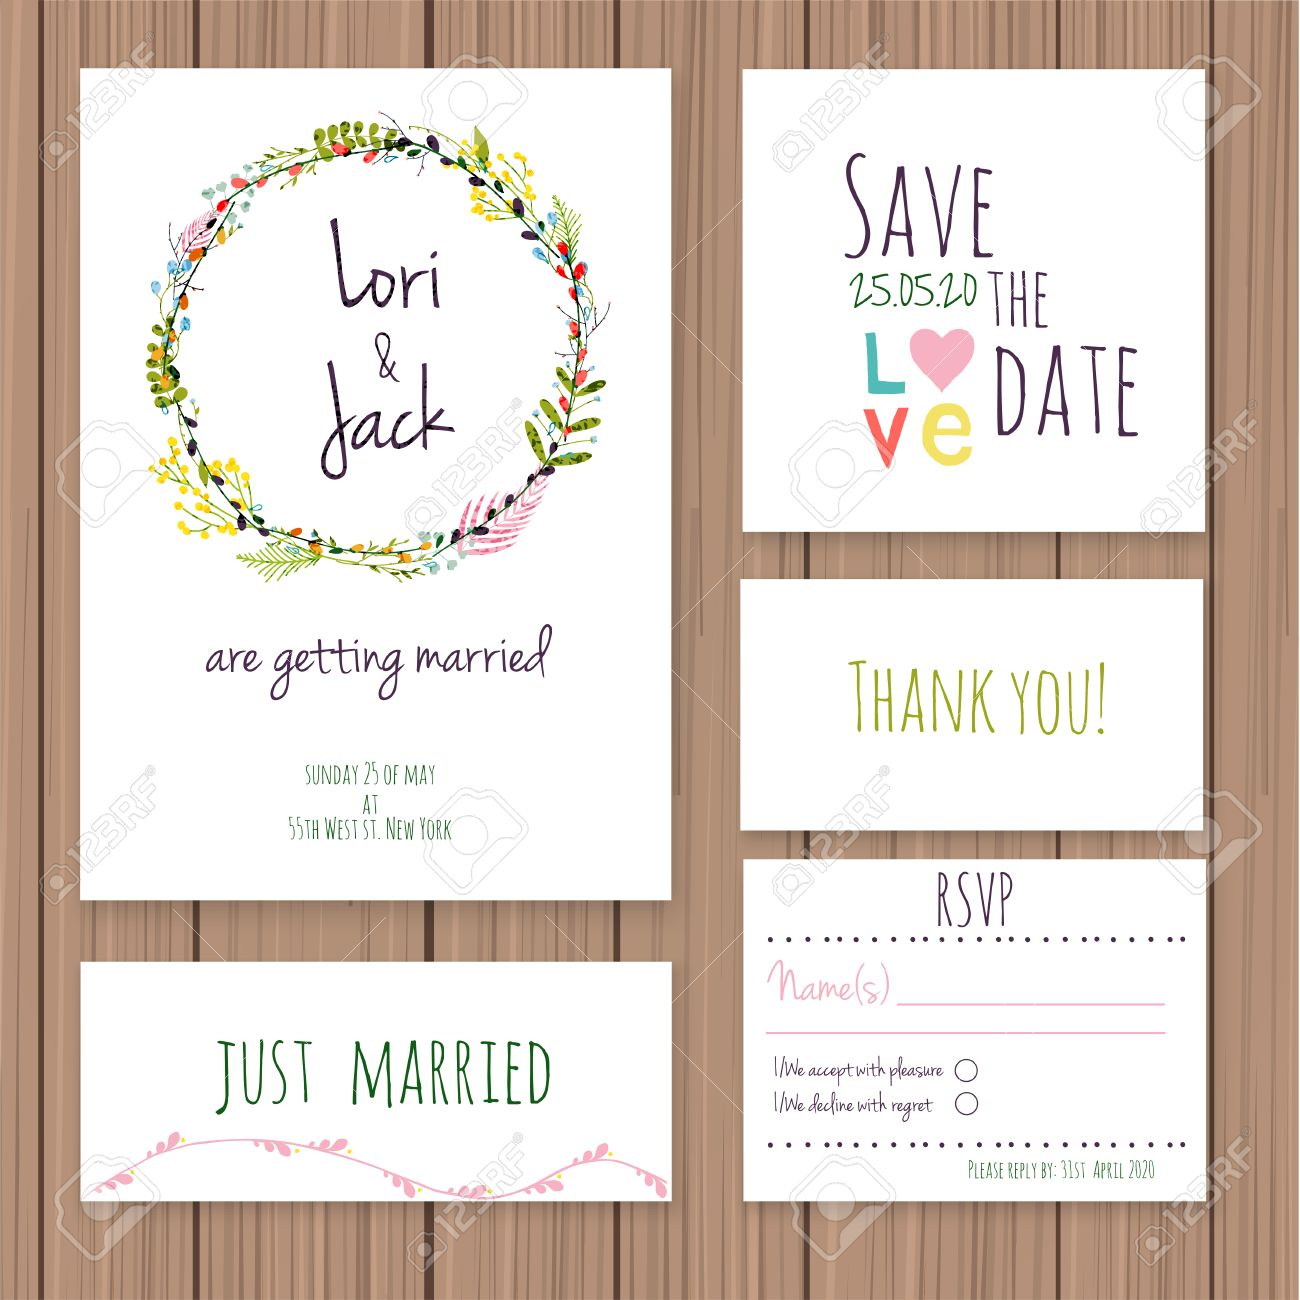 Wedding Invitation Card Set Thank You Save The Date Cards RSVP